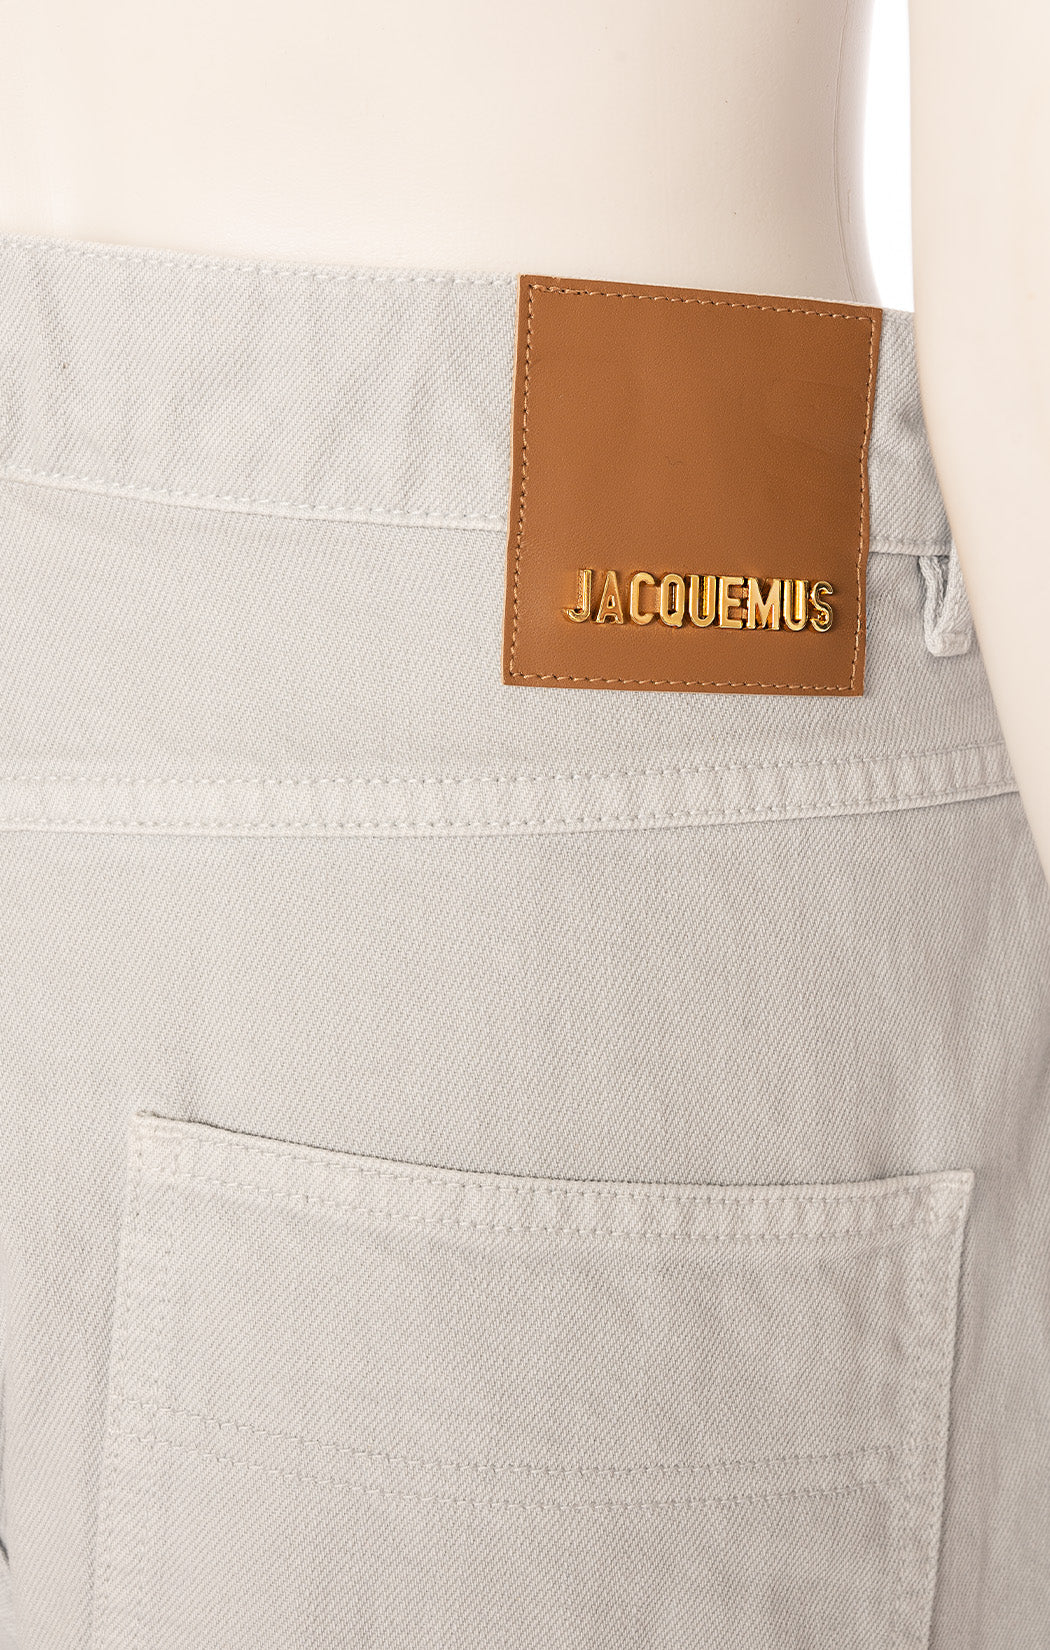 "JACQUEMUS with tags  Jeans Size: 28"" waist"